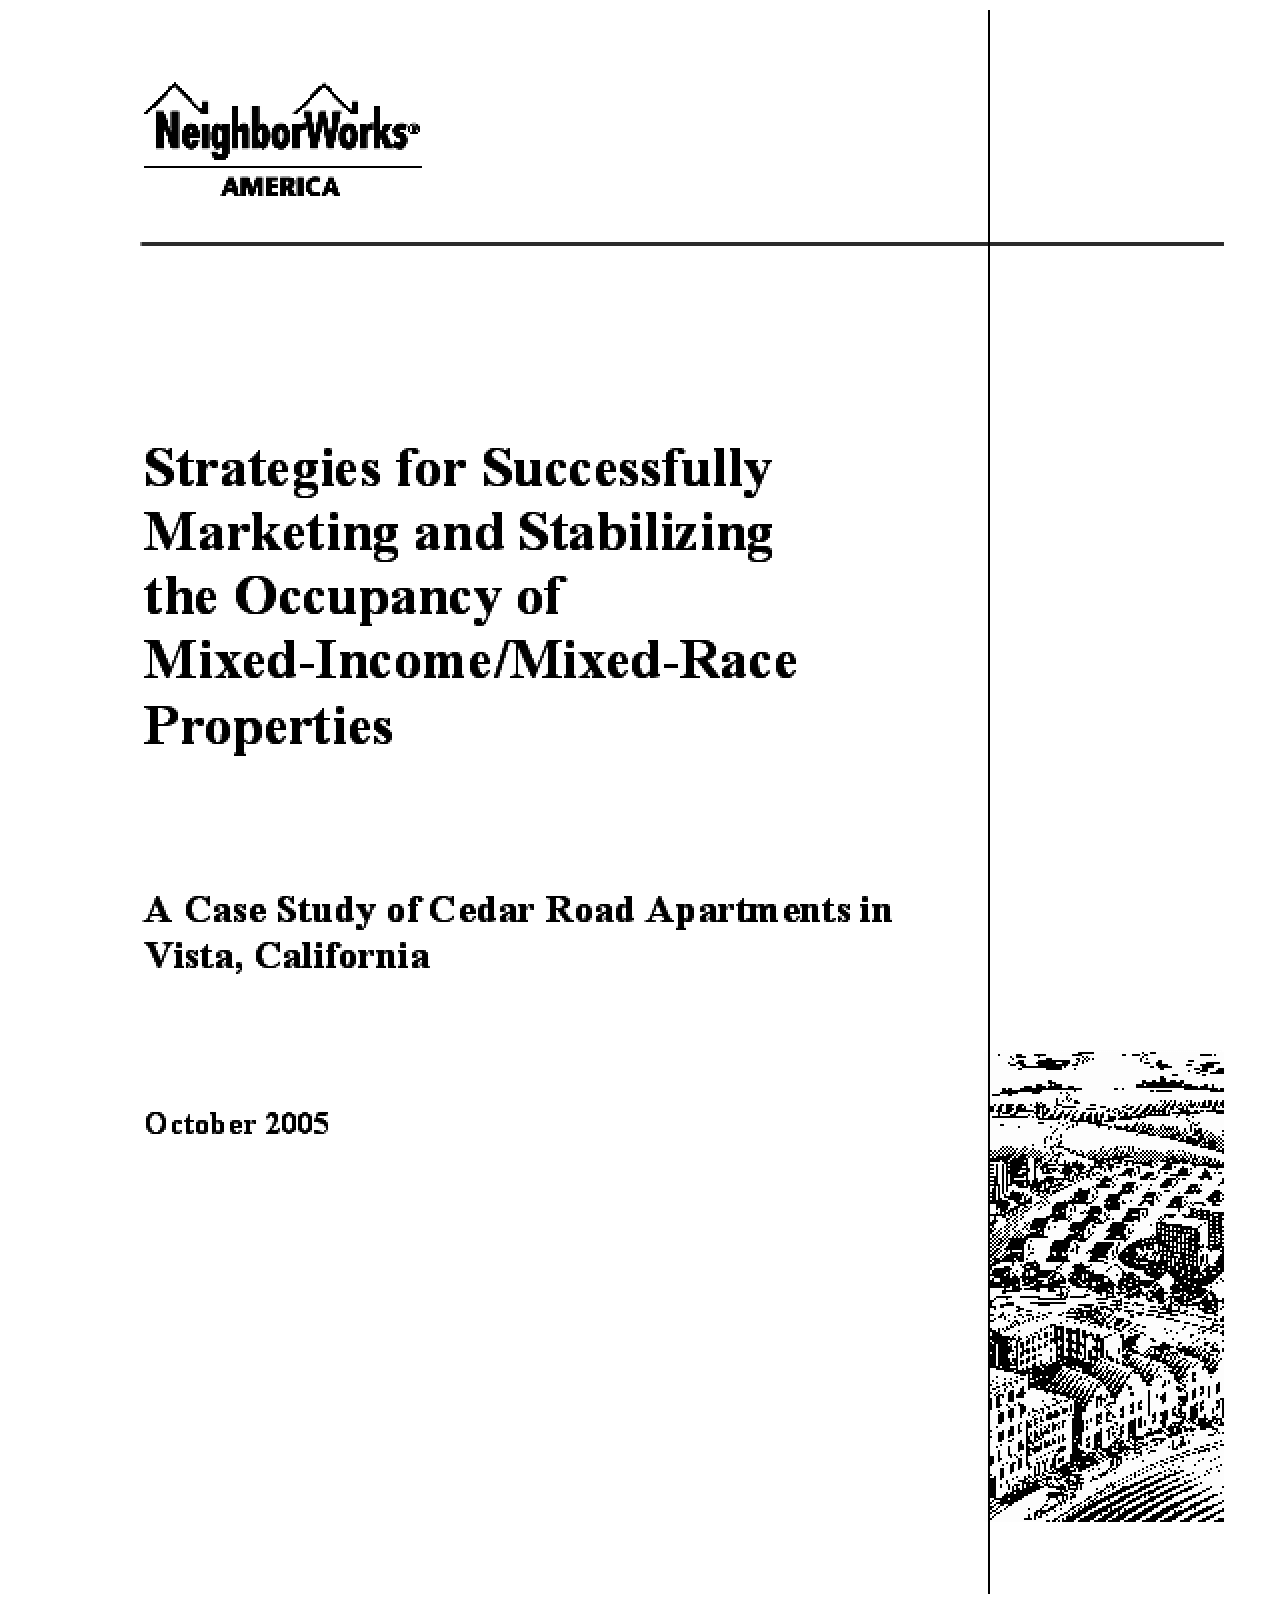 Strategies for Successfully Marketing and Stabilizing the Occupancy of Mixed-Income/Mixed-Race Properties: A Case Study of Cedar Road Apartments in Vista, California